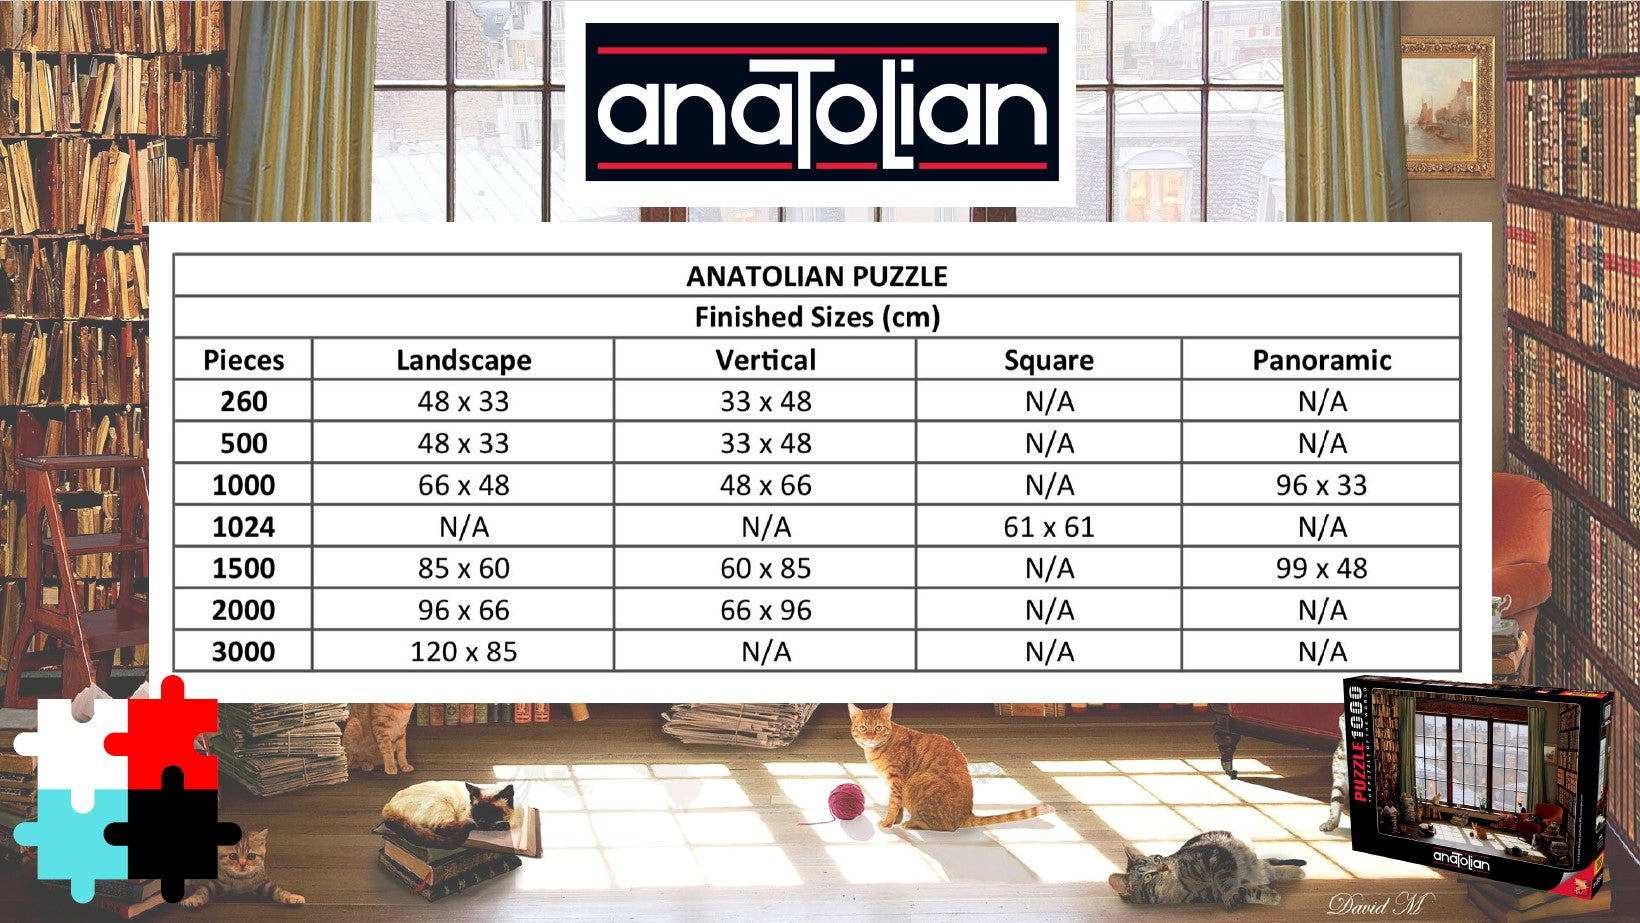 Anatolian Puzzle Size in Centimeters